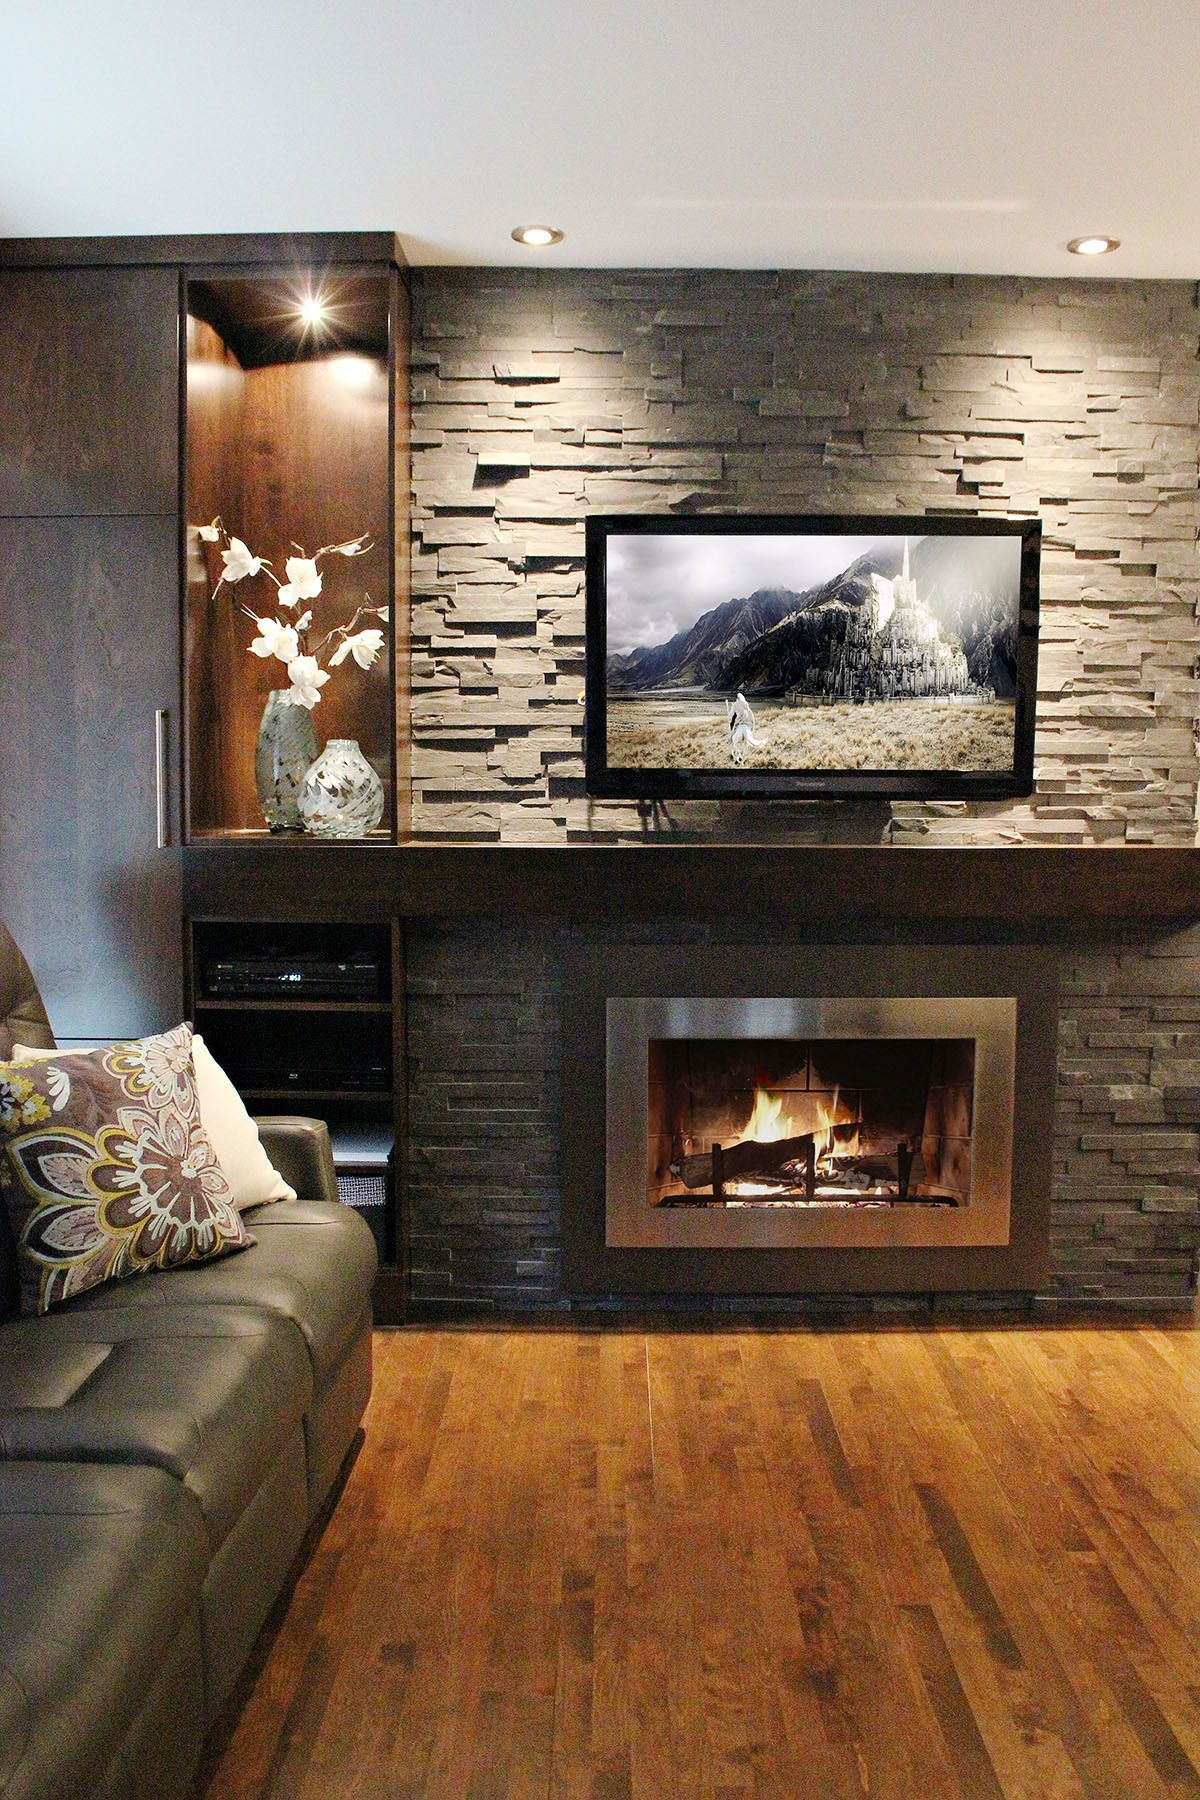 Fireplace Backing New 30 Incredible Fireplace Ideas for Your Best Home Design